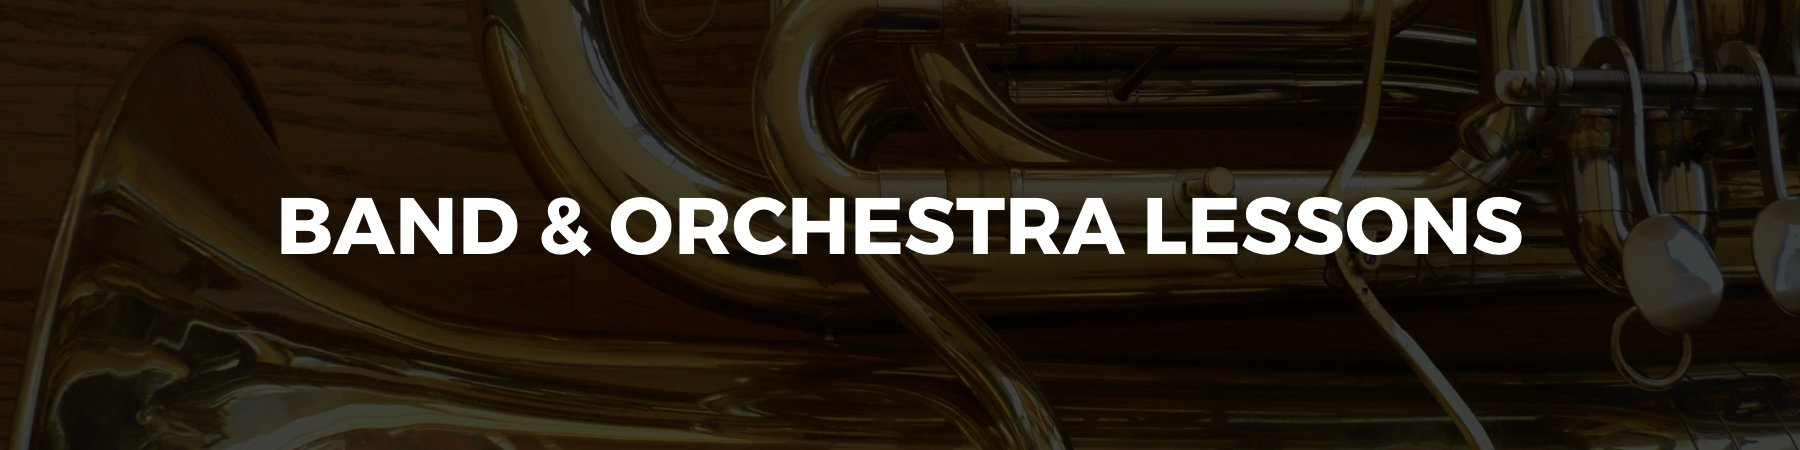 Band and Orchestra Lessons